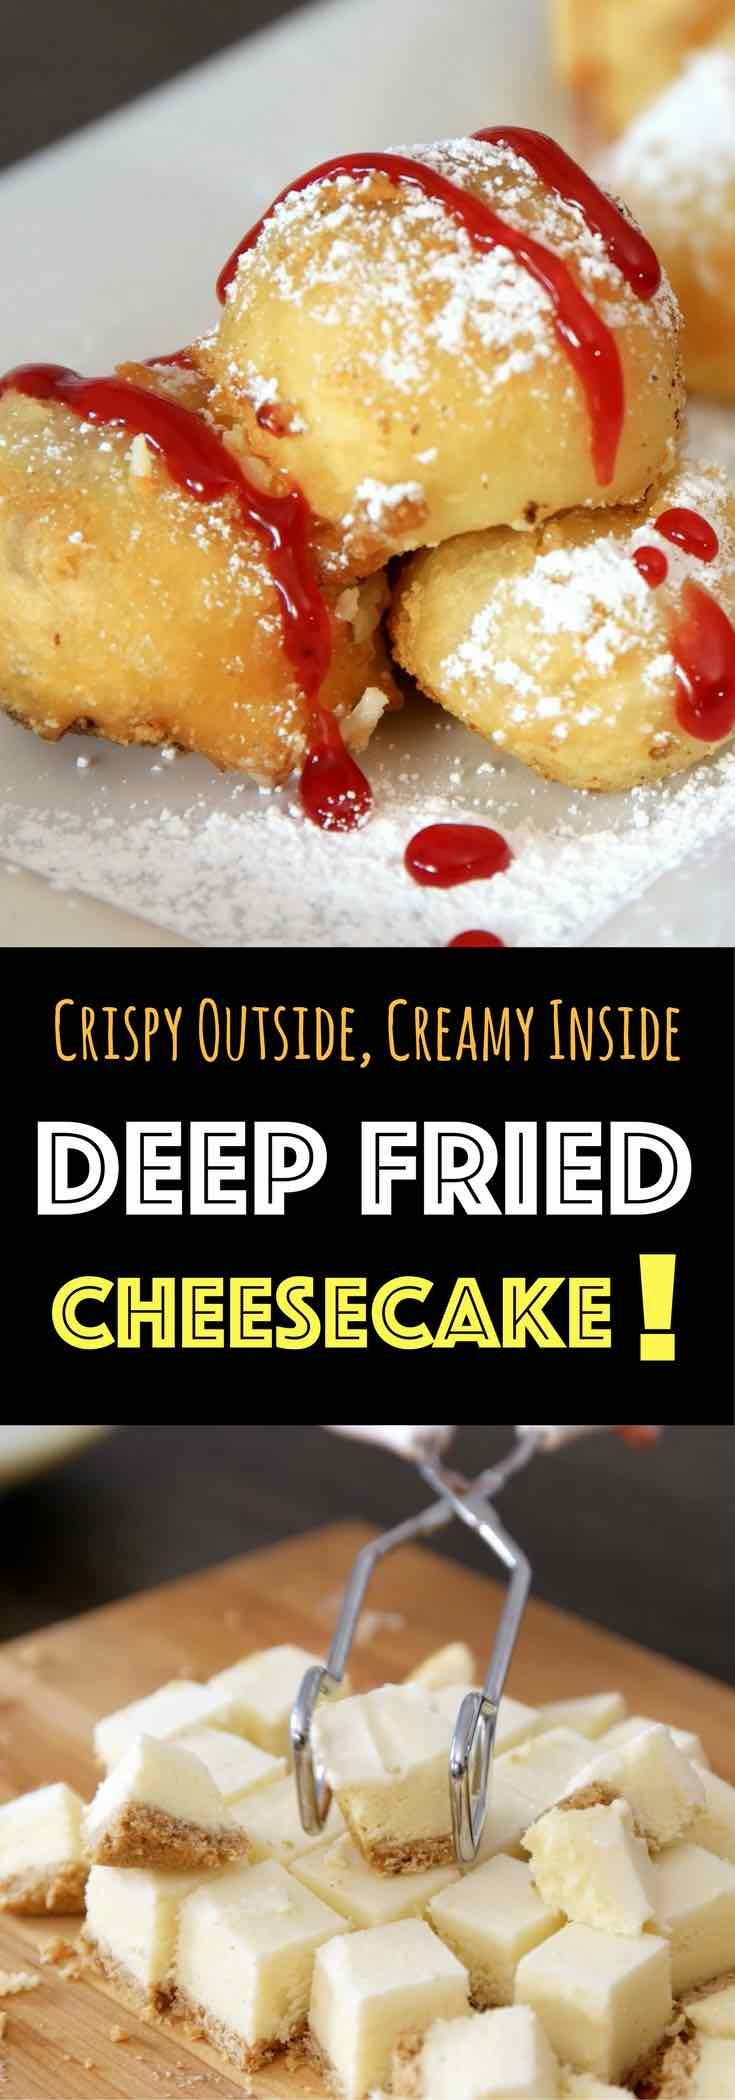 Crispy & Creamy Deep Fried Cheesecake – Crispy outside and creamy inside! you can't resist this delicious dessert made with your favorite frozen or leftover cheesecake. It only requires a few simple ingredients: flour, baking powder, salt, sugar, milk and oil. It's great for a party, cheat days or a midnight snack. So yummy! No bake dessert. Vegetarian. Video recipe. | tipbuzz.com